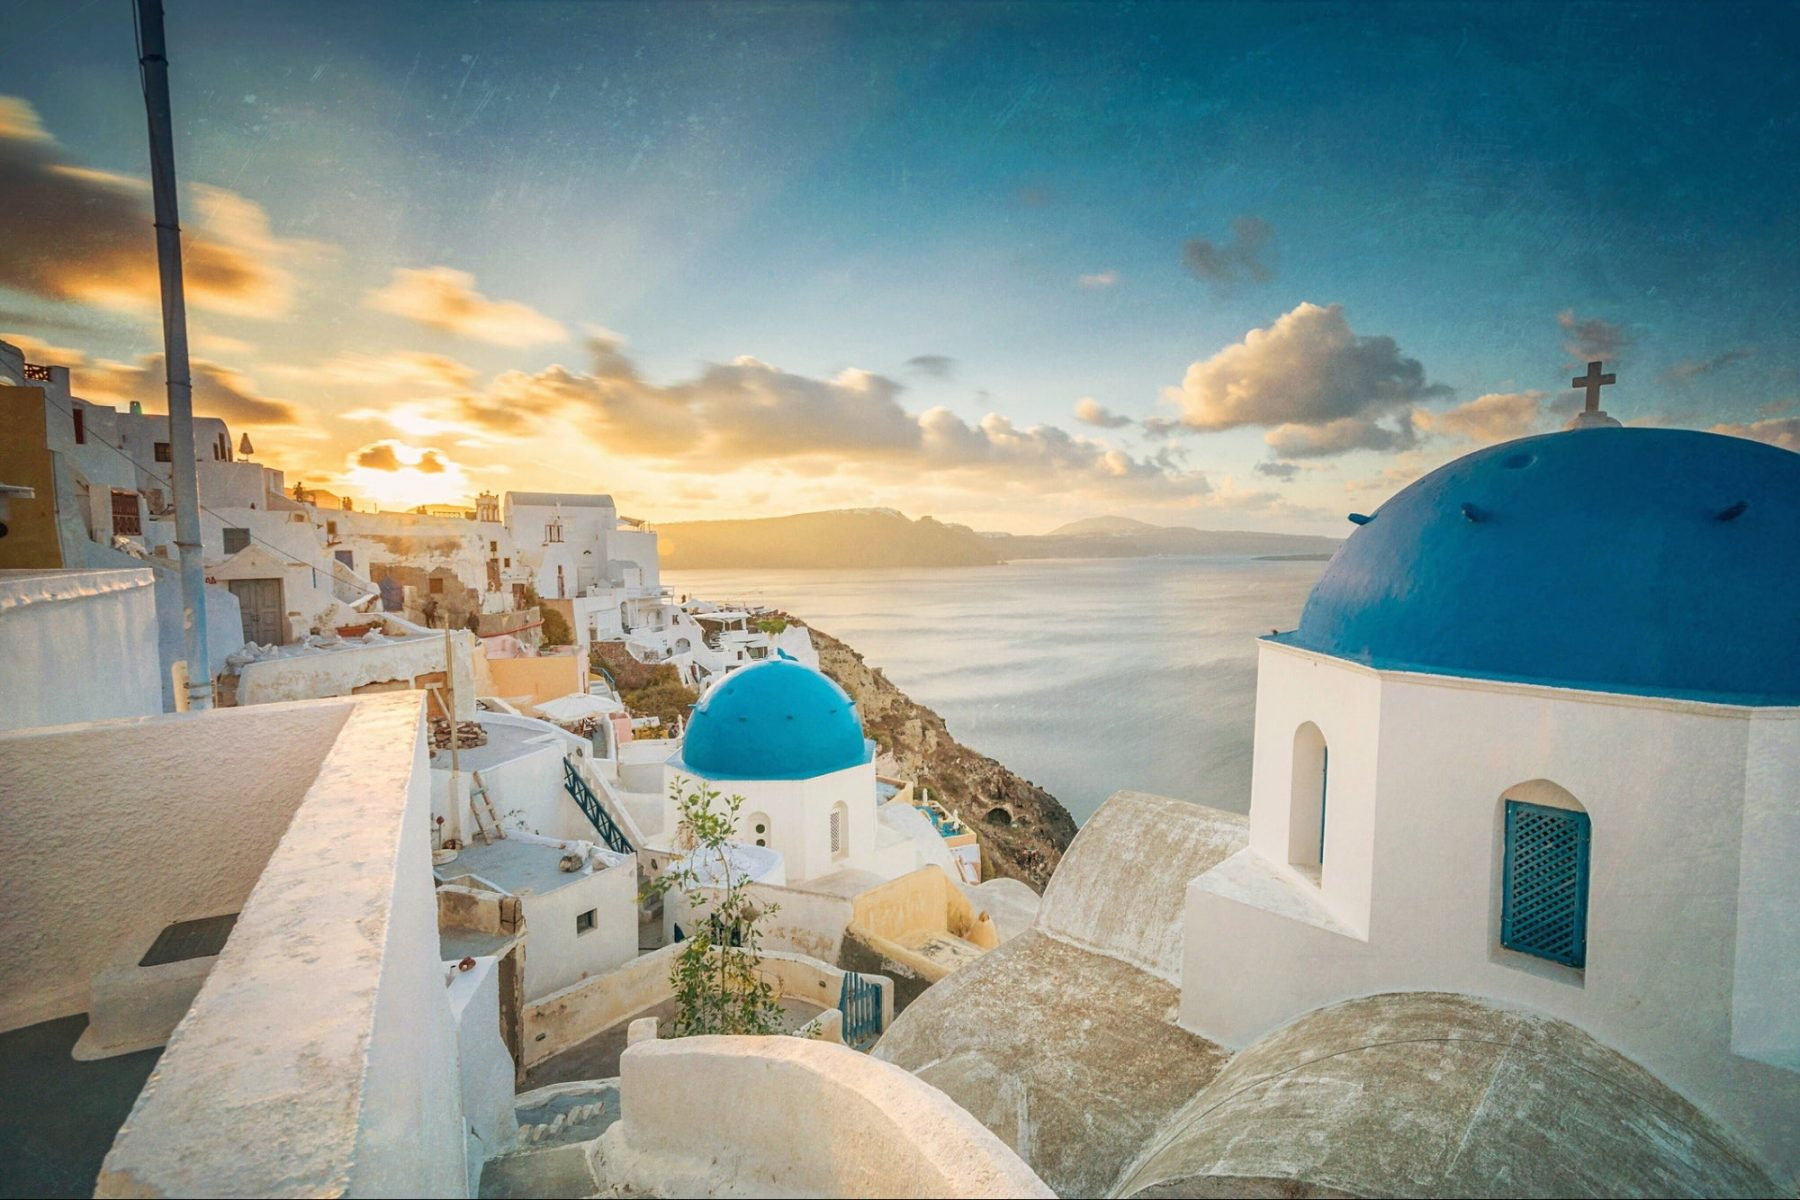 i'm-working-10-hours-a-week-while-i-travel-through-greece-for-3-months.-here's-how-i-prepared-to-take-this-break-from-my-business